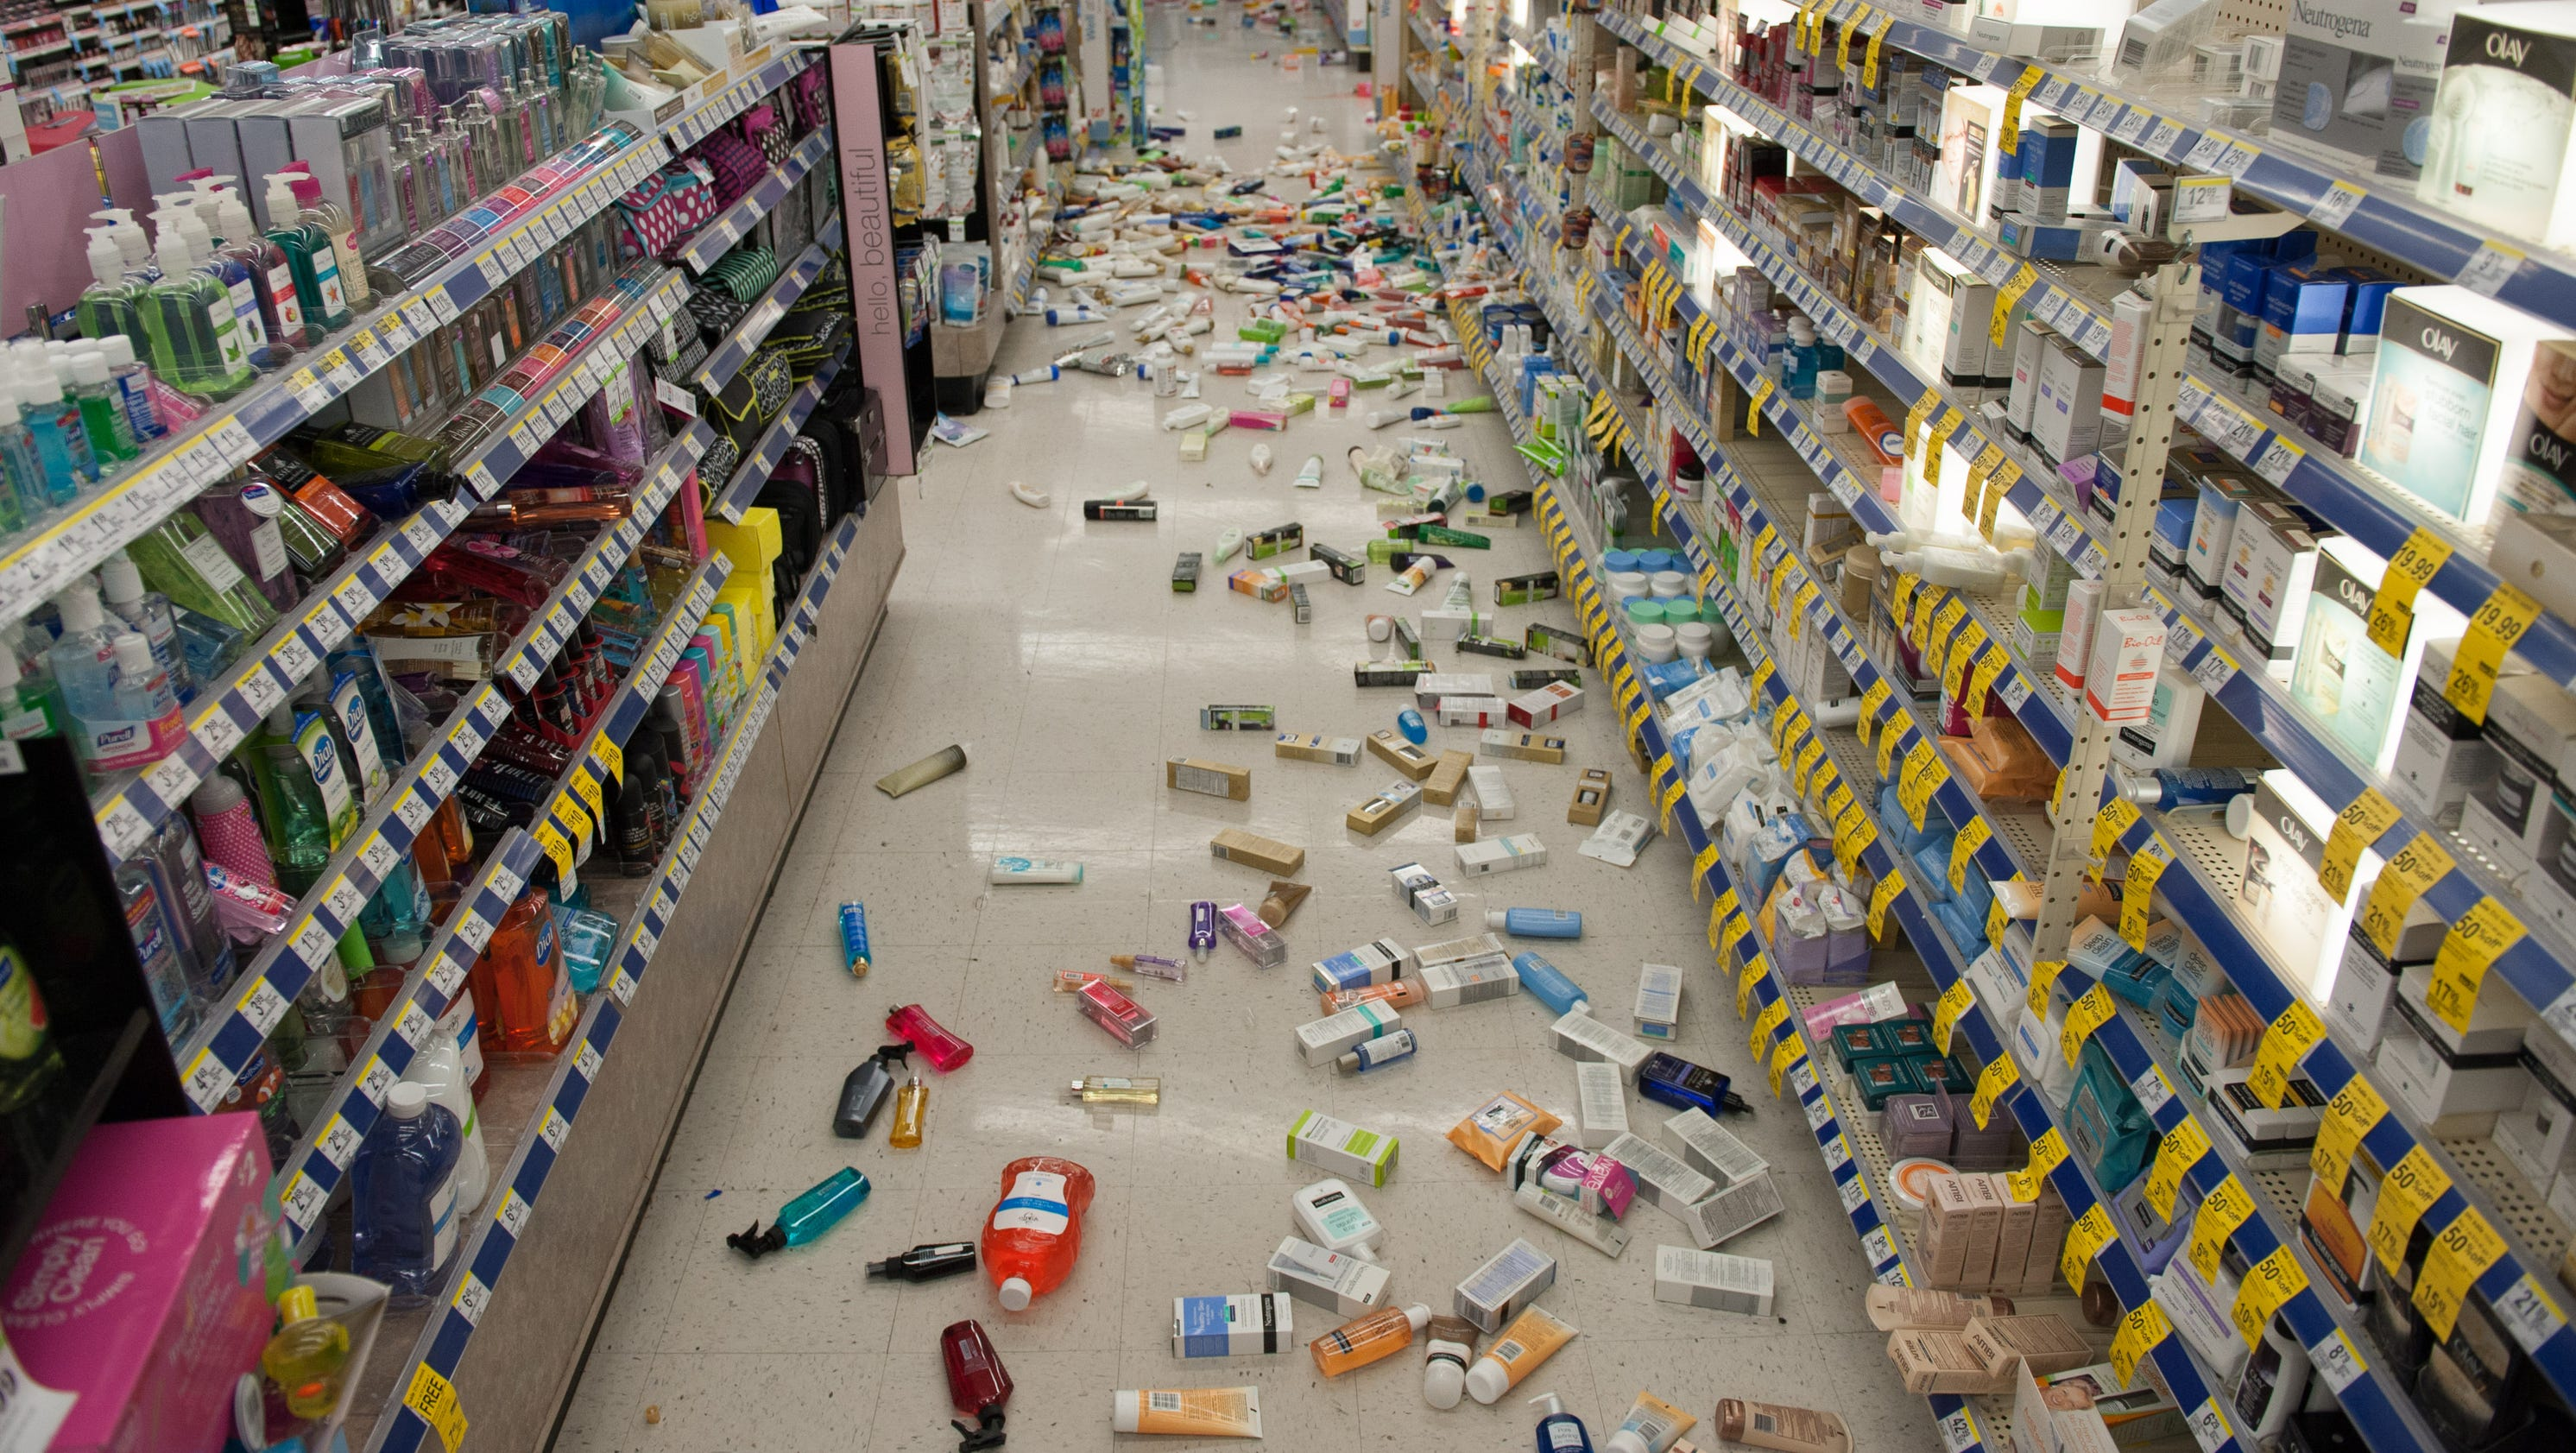 More than 100 aftershocks rattle Calif. after strong quake